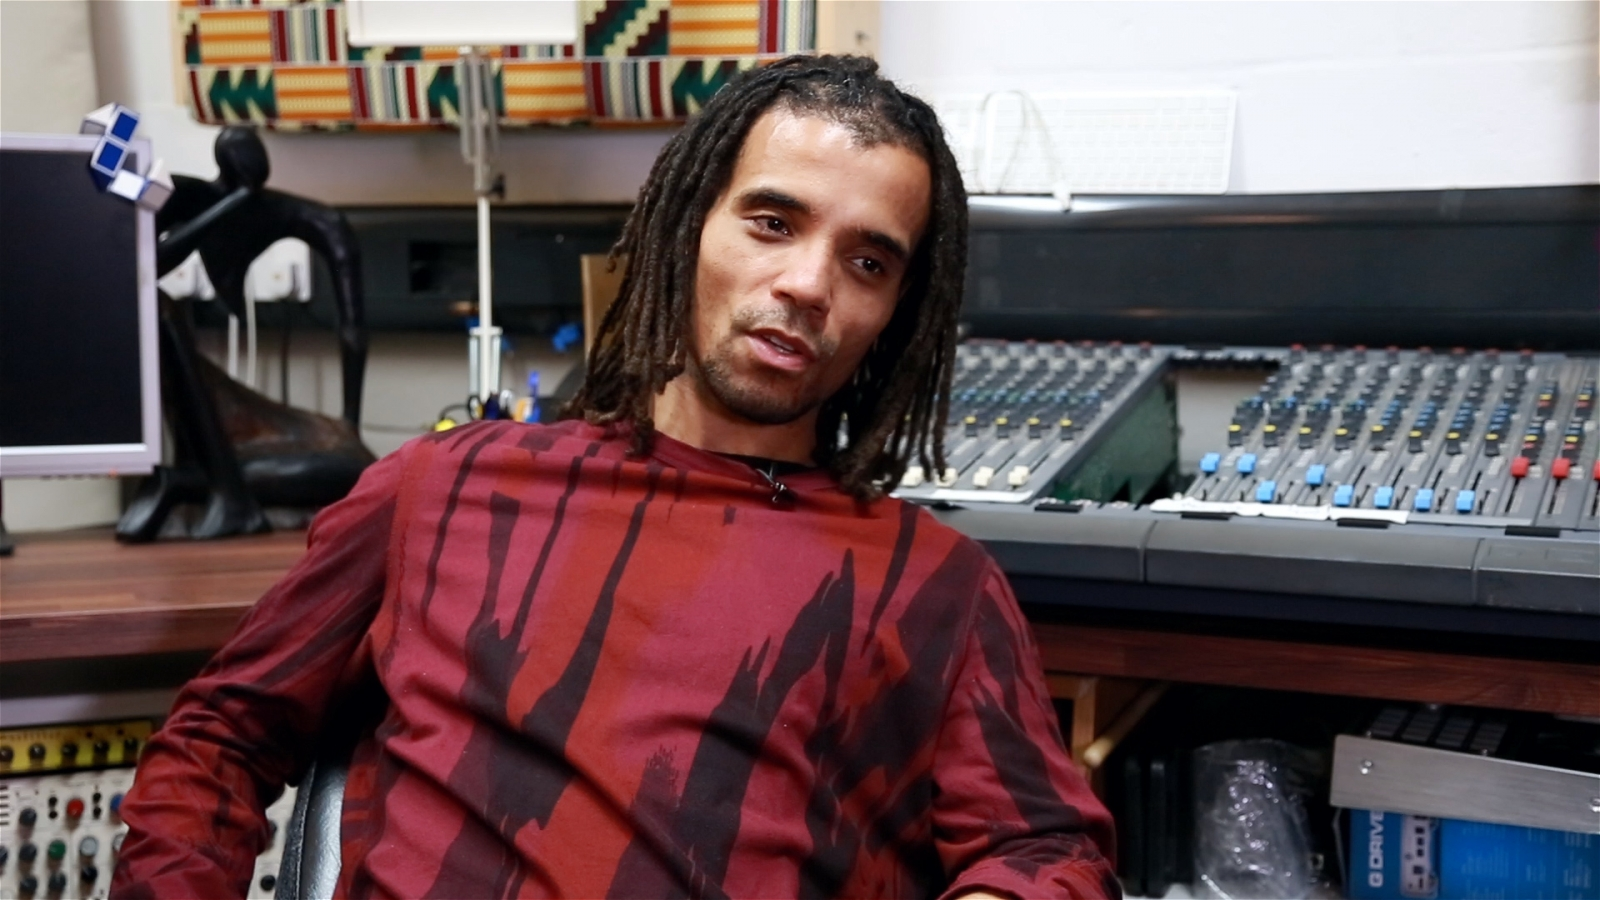 u-k-rapper-akala-talks-about-his-new-music-hip-hop-and-graphic-novel-visions